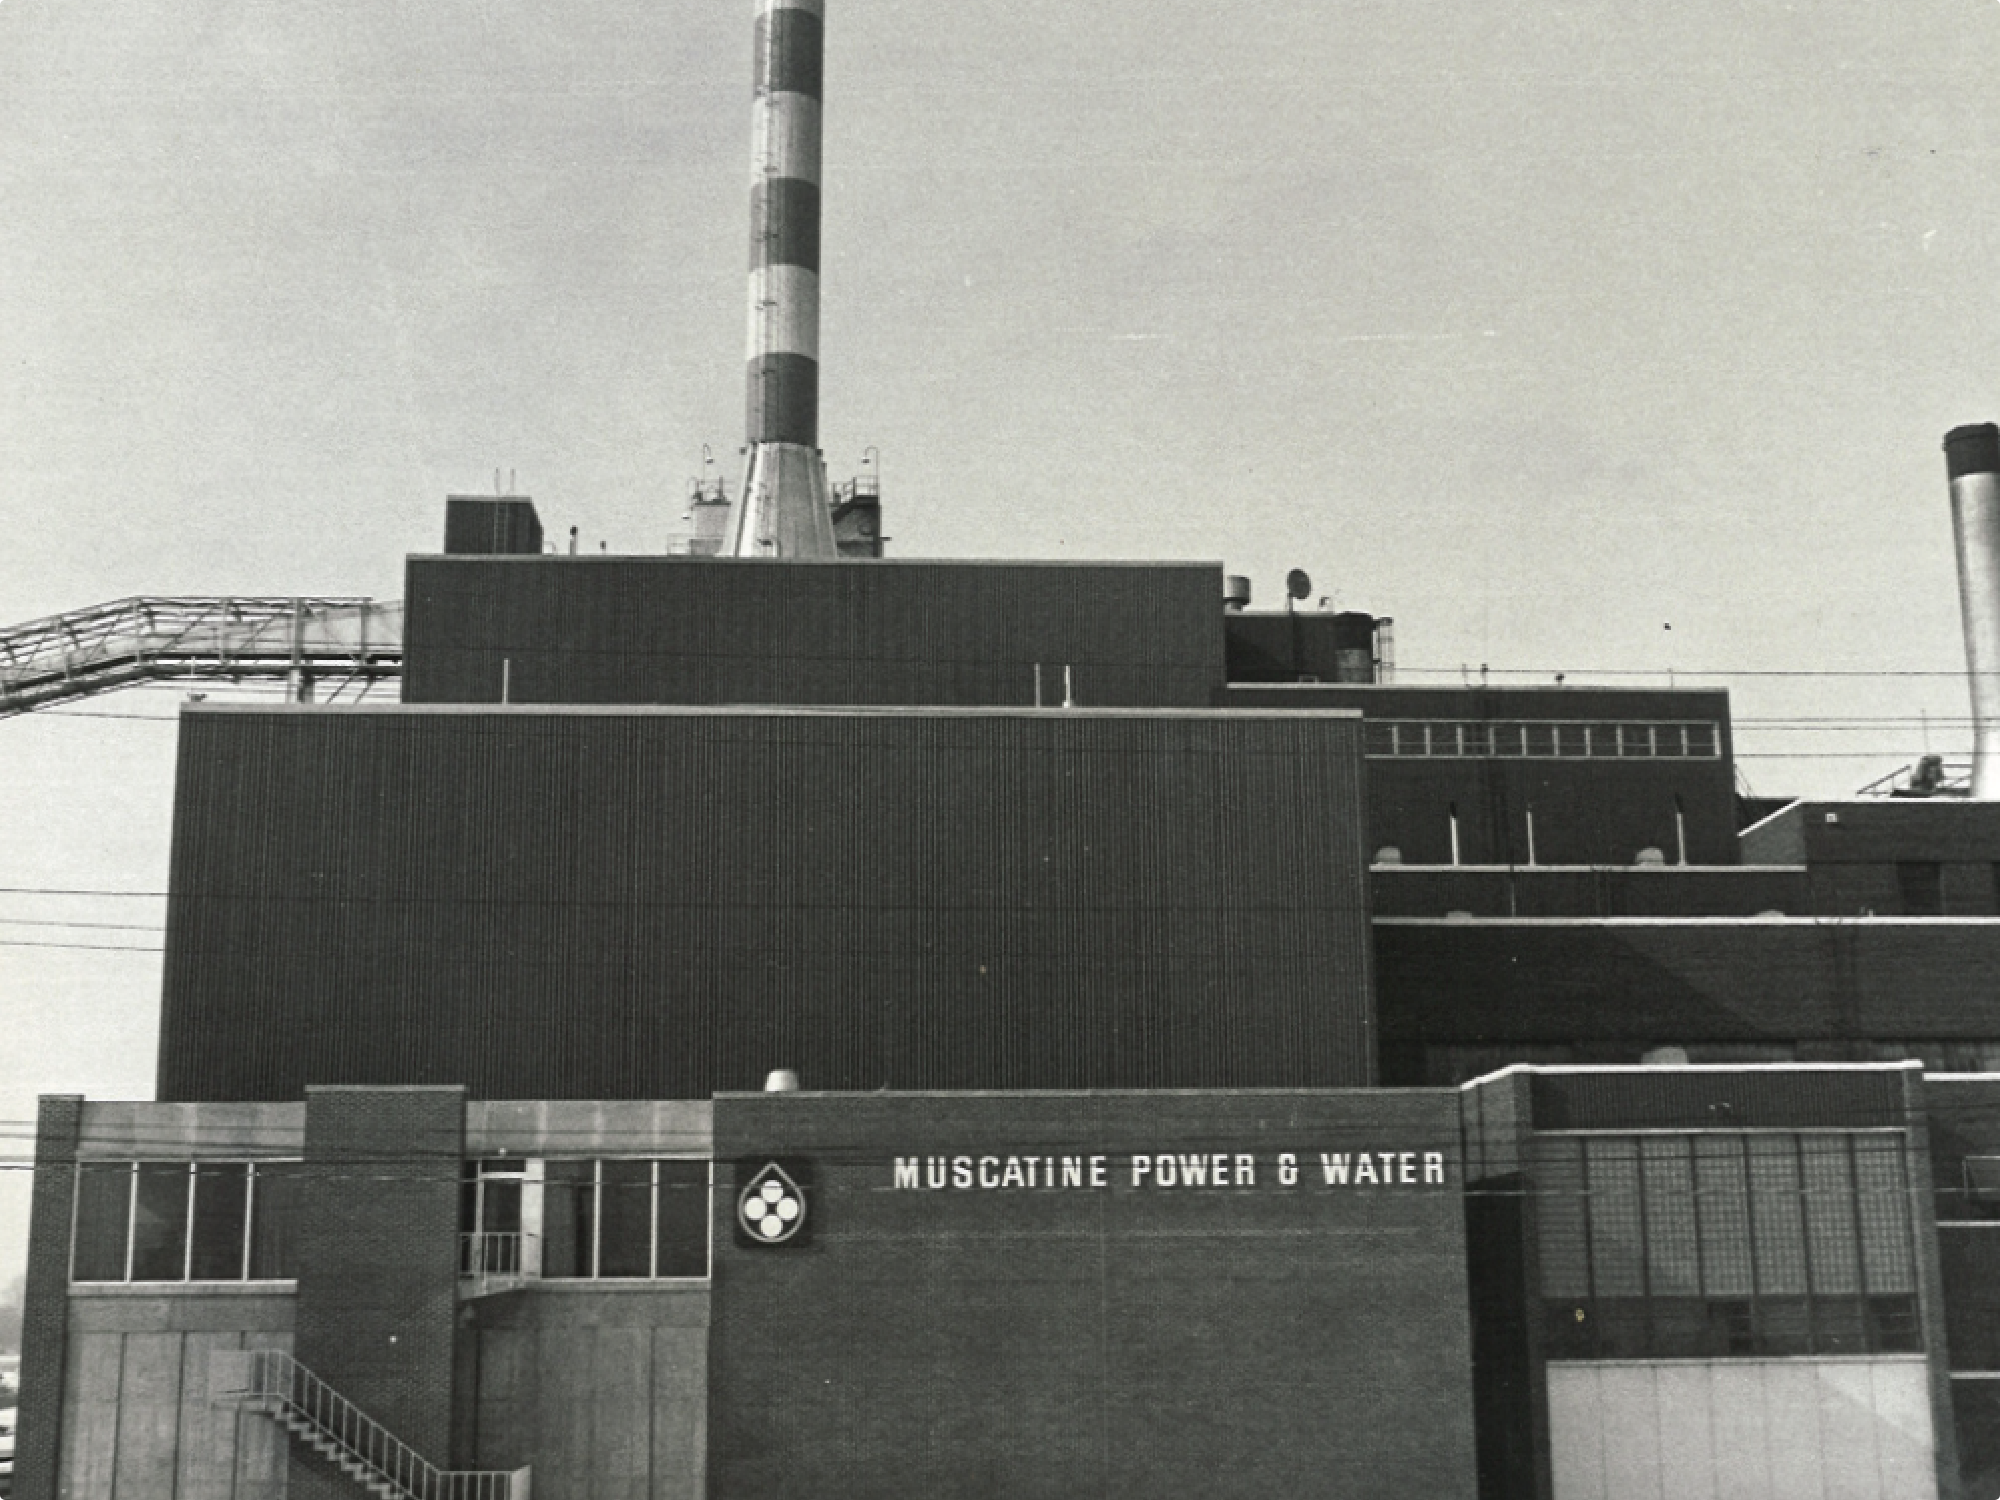 black and white image of power plant building